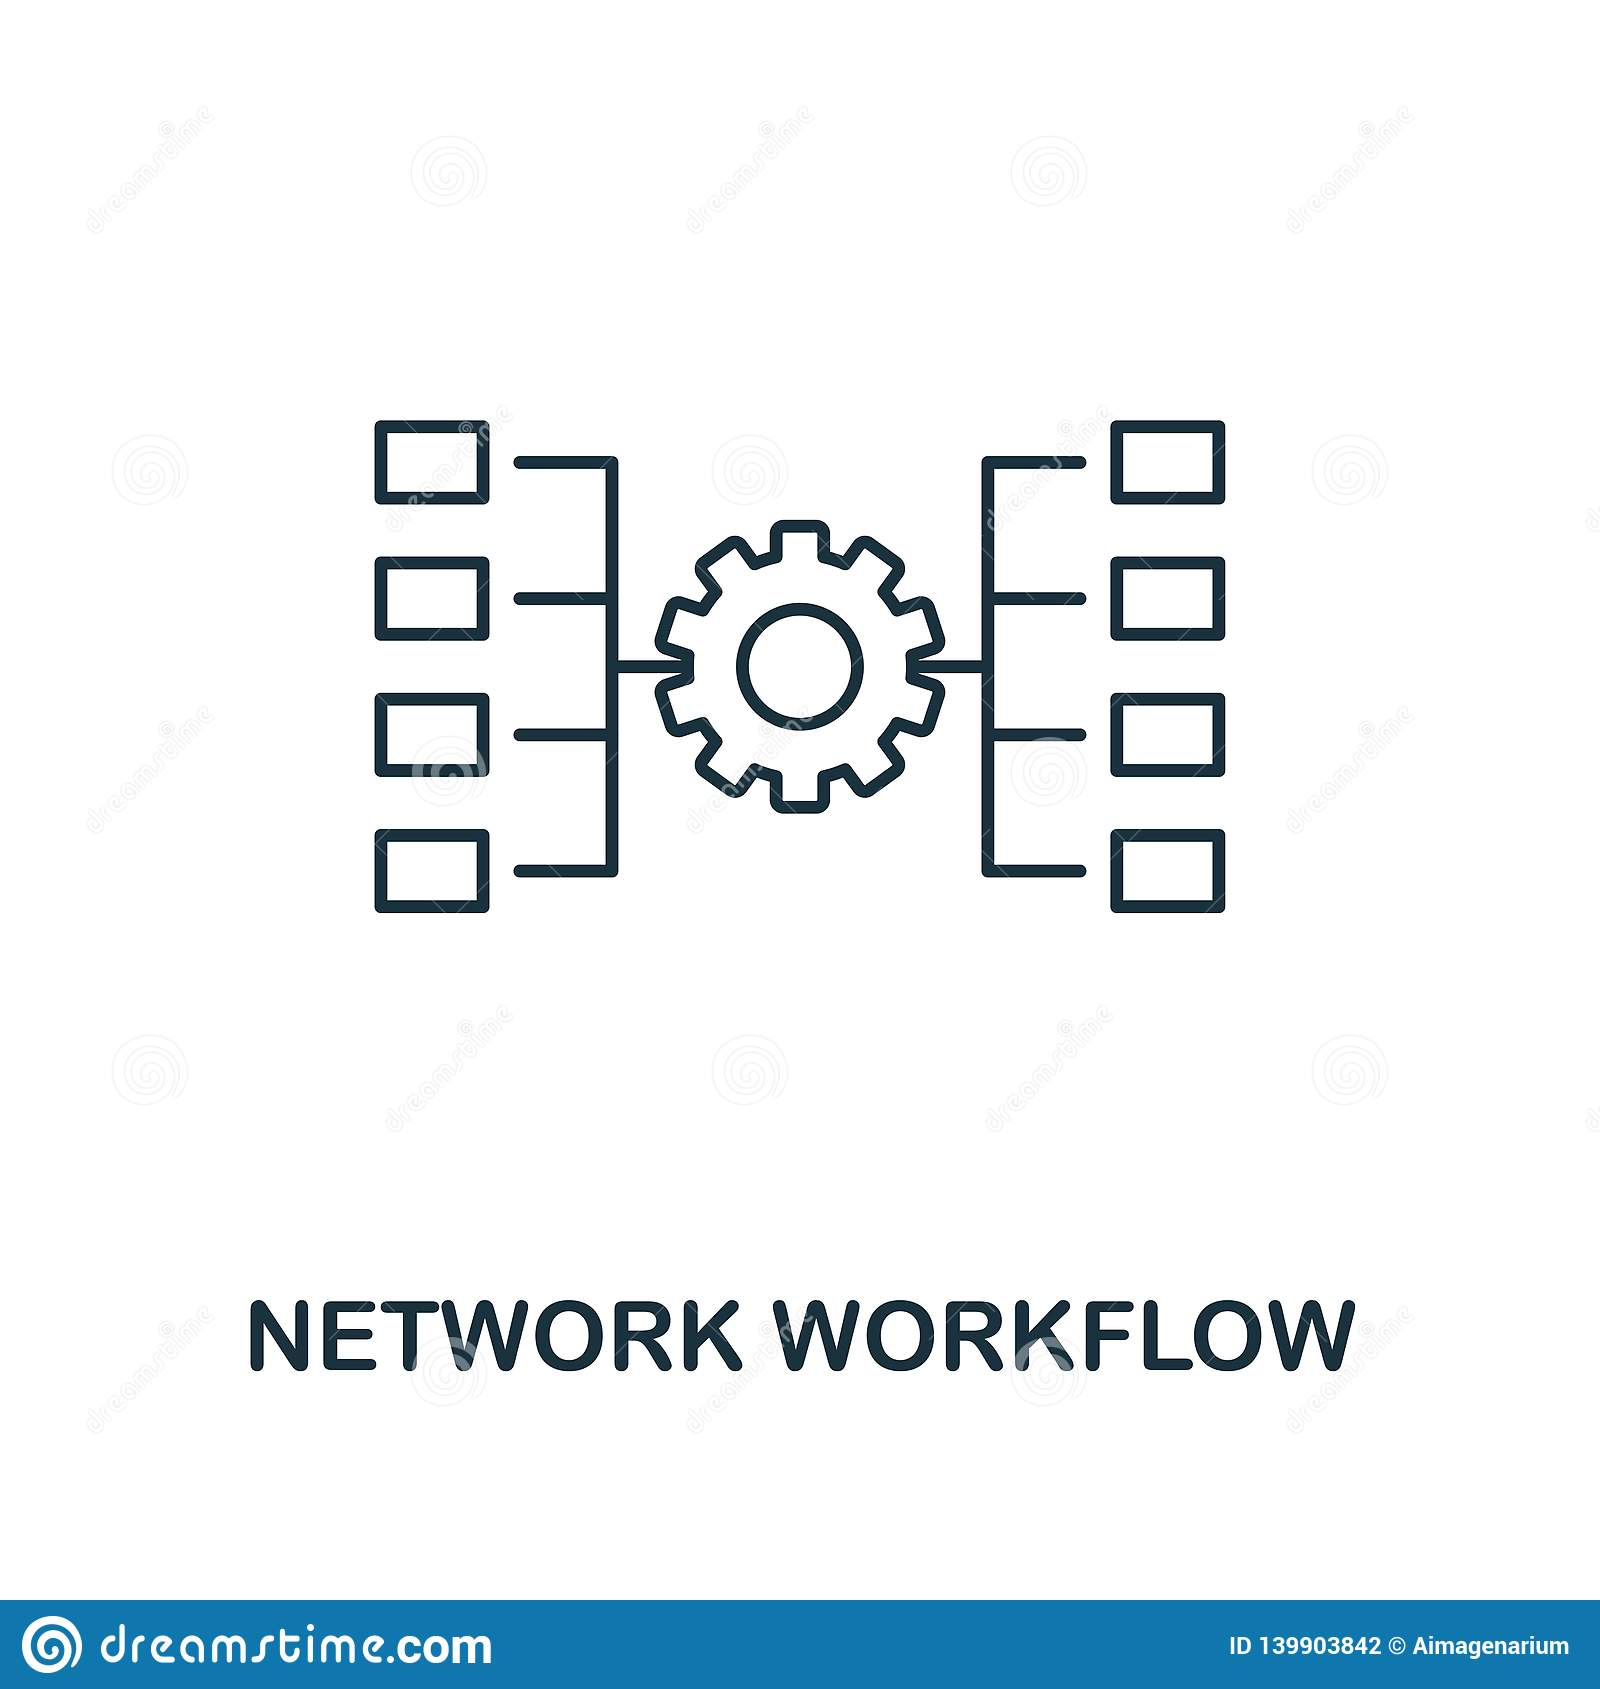 Network Workflow outline icon. Thin line style from big data icons collection. Pixel perfect simple element network